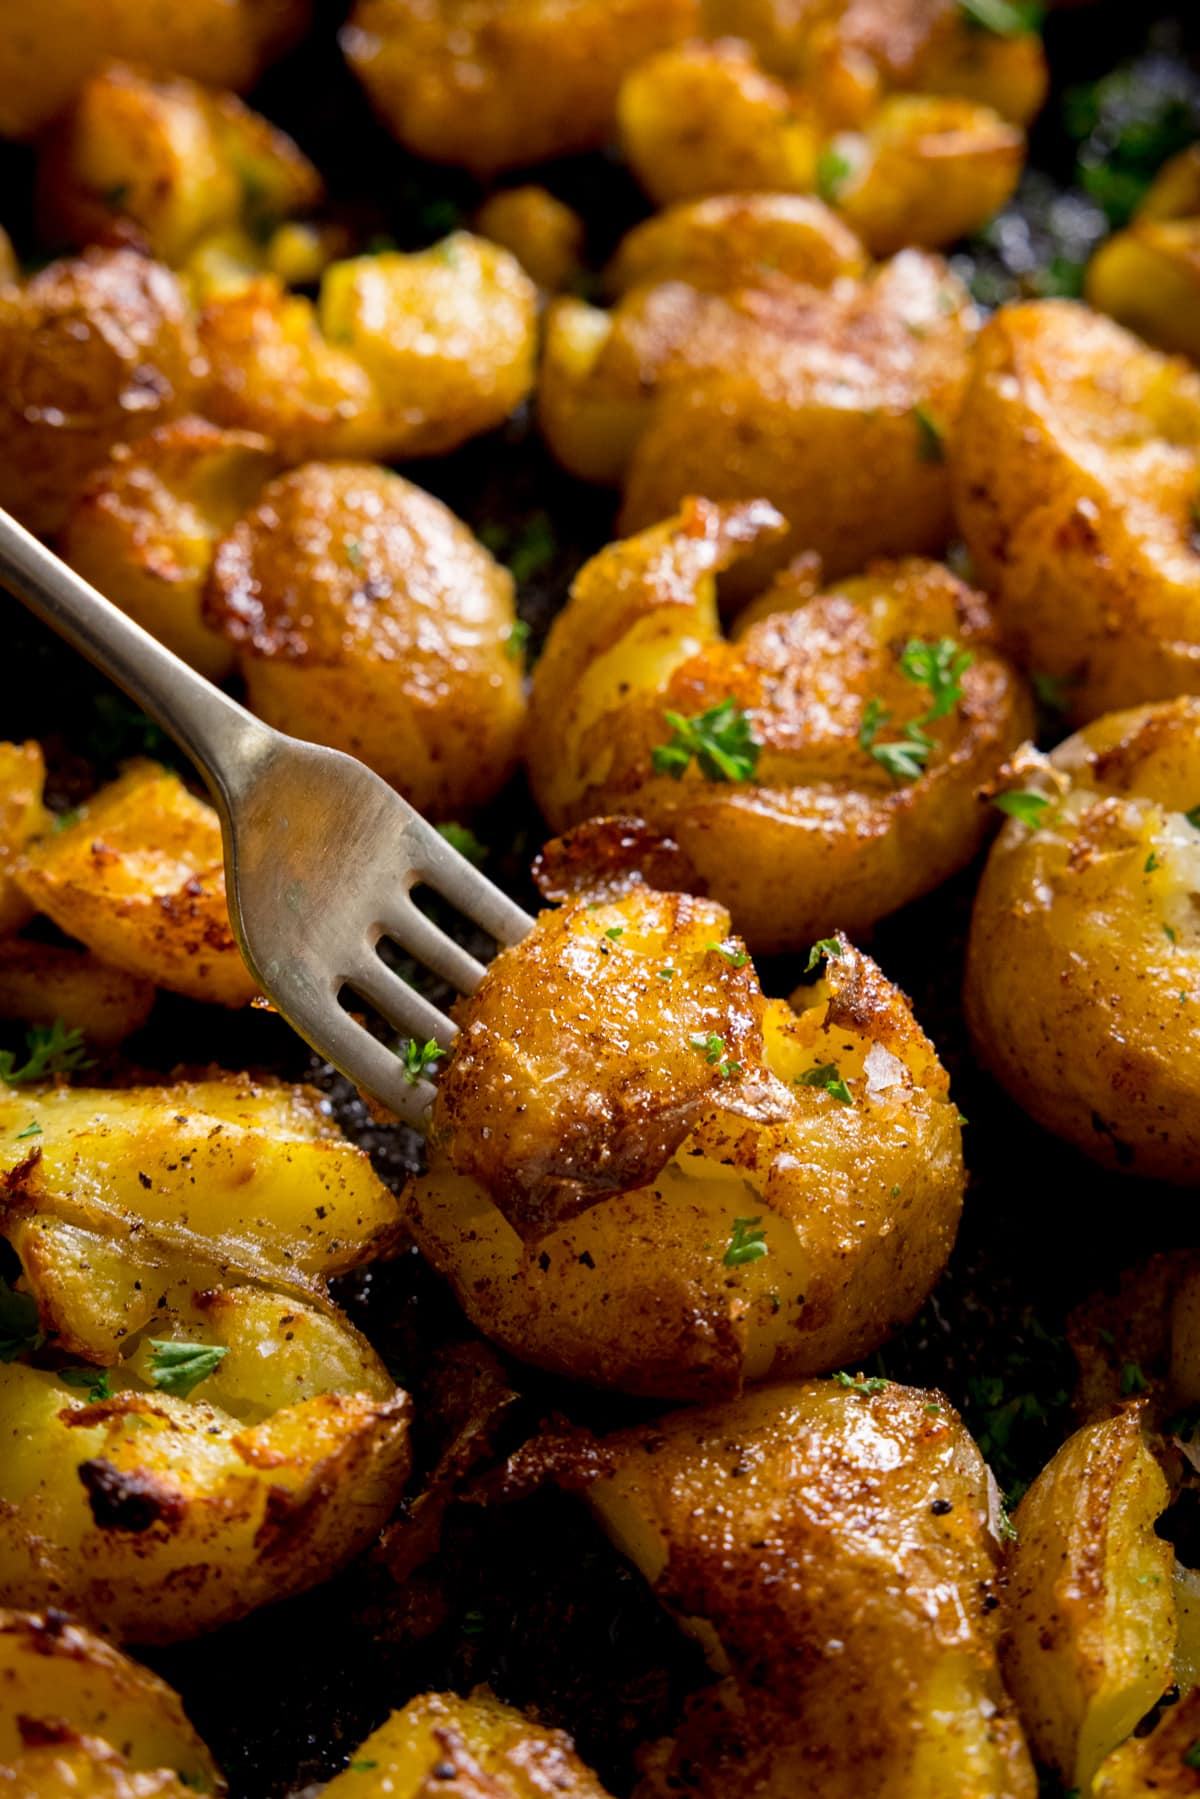 A plate of crispy smashed potatoes with a fork digging into a potato